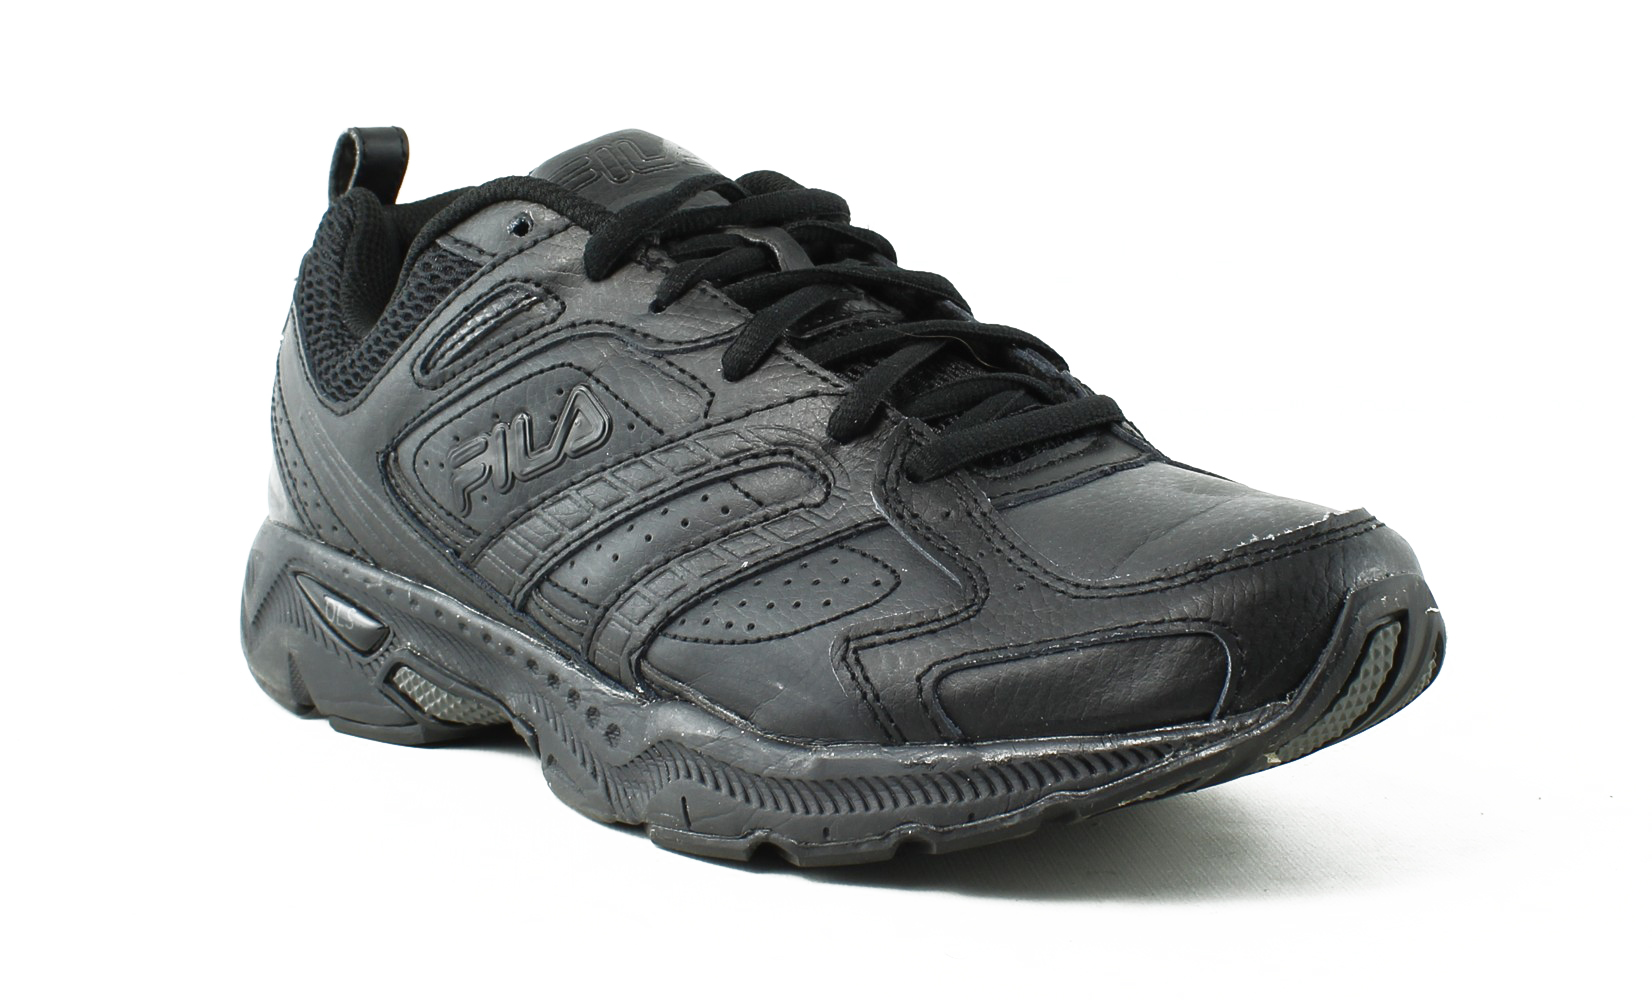 036f972fdb6a Fila Mens - Black Fashion Shoes Size 10 (420834)